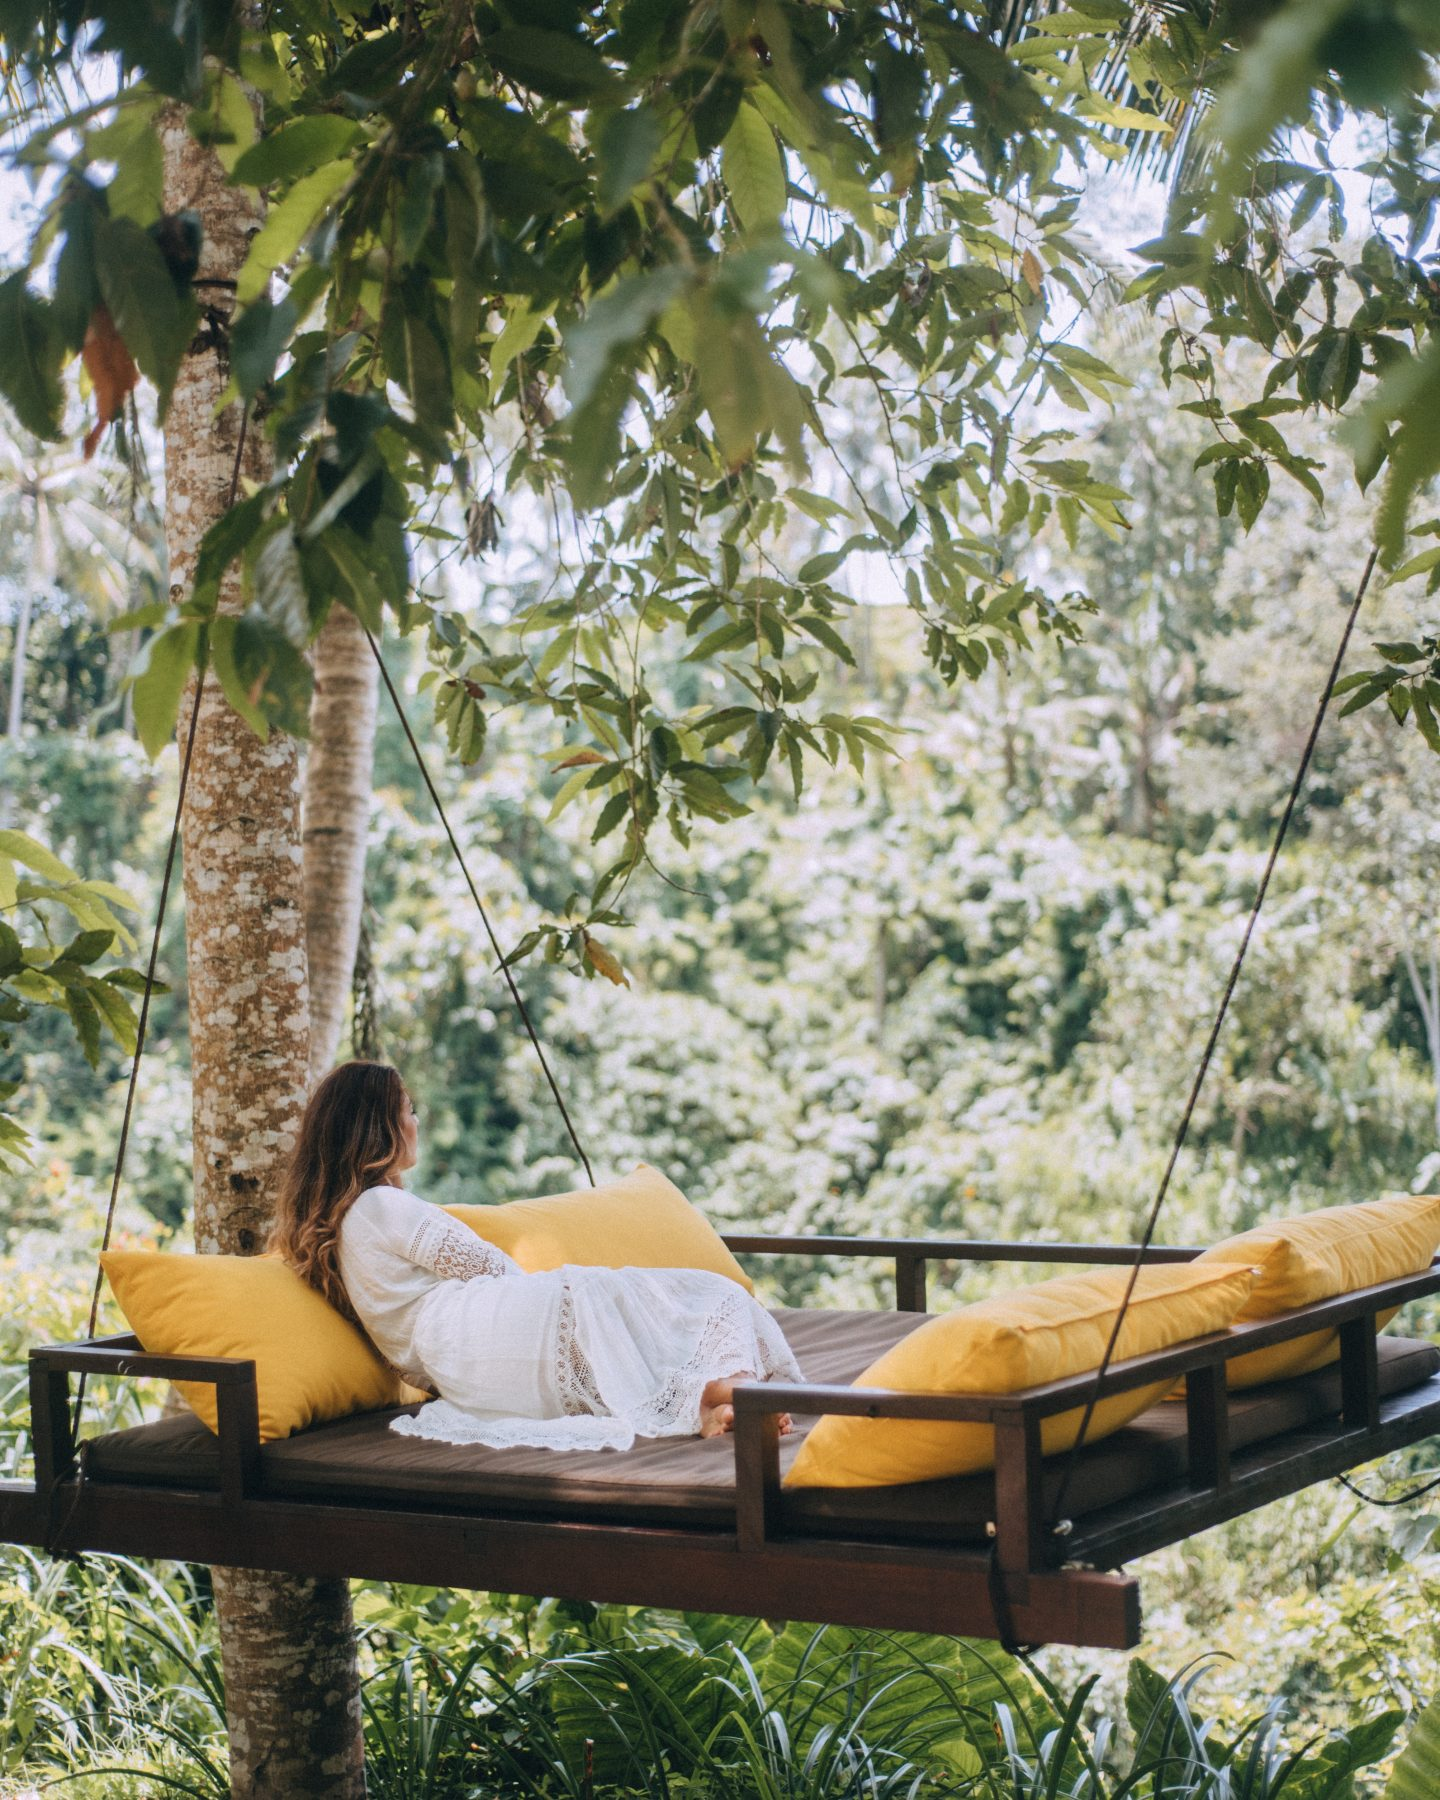 Swing bed in Bali